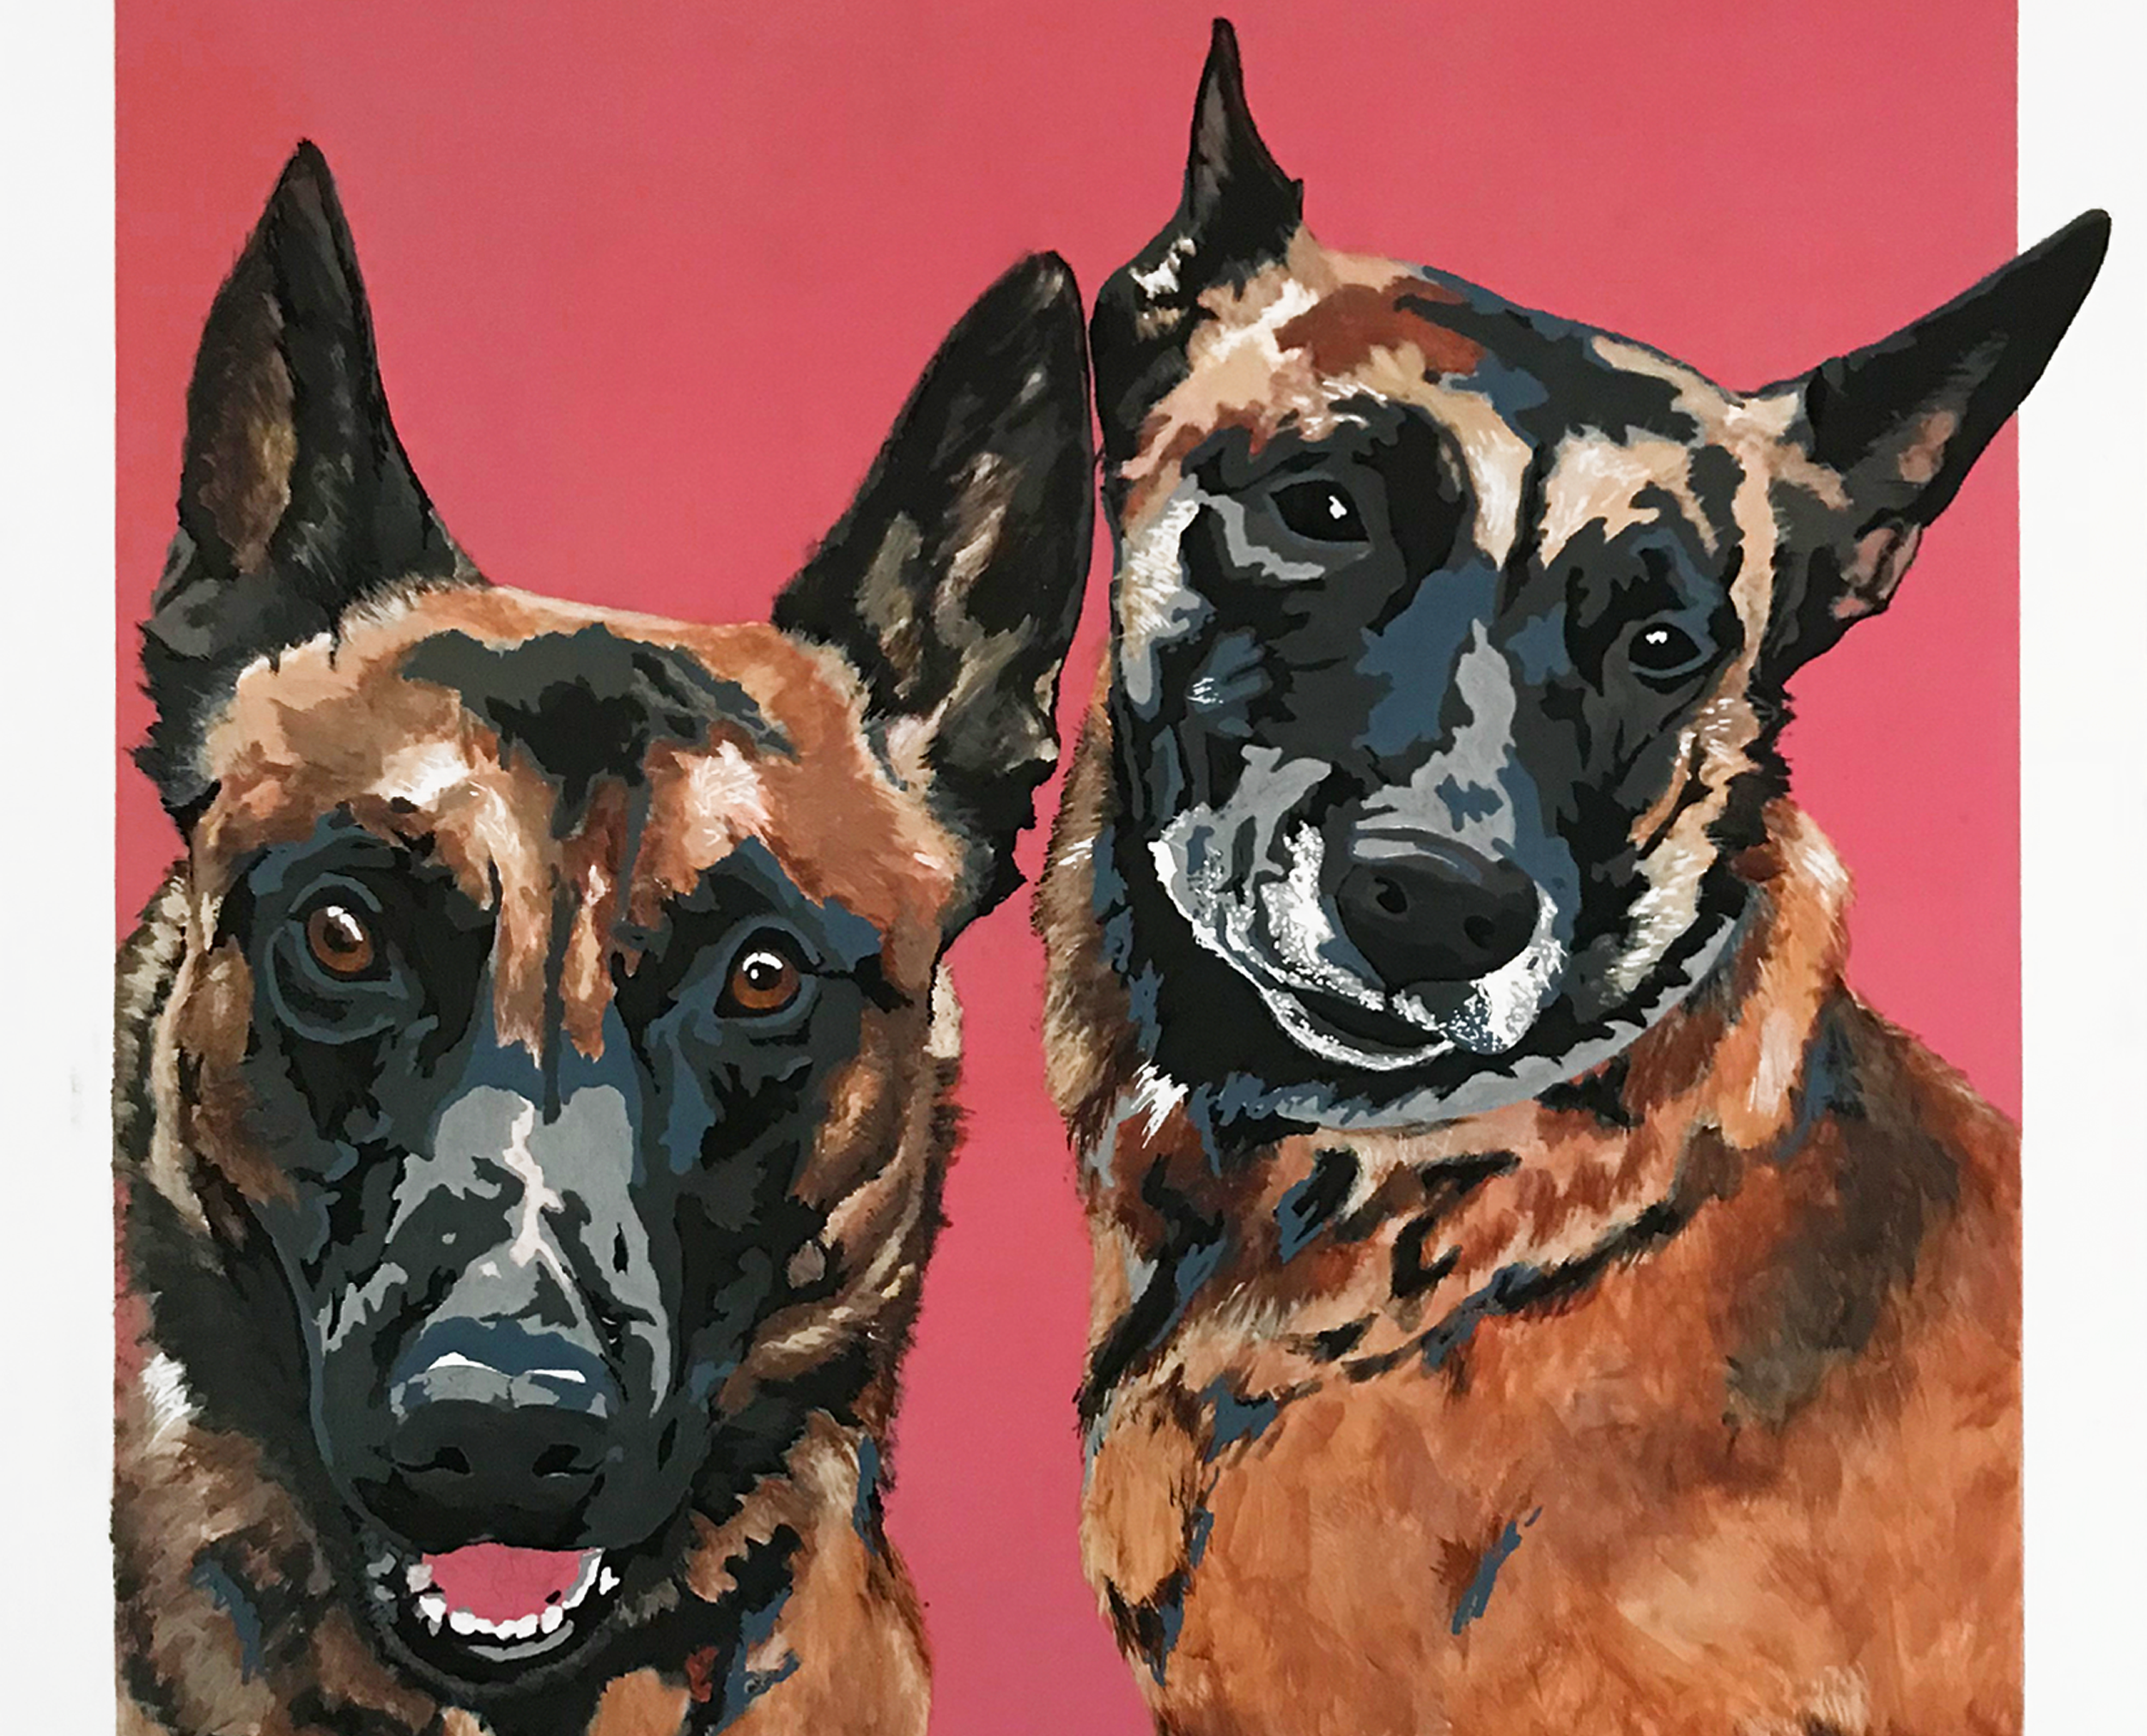 MALINOIS PORTRAIT - When asked to do this 16 x 20 inch portrait of Belgian Malinois in New York, Casey was excited to get started.